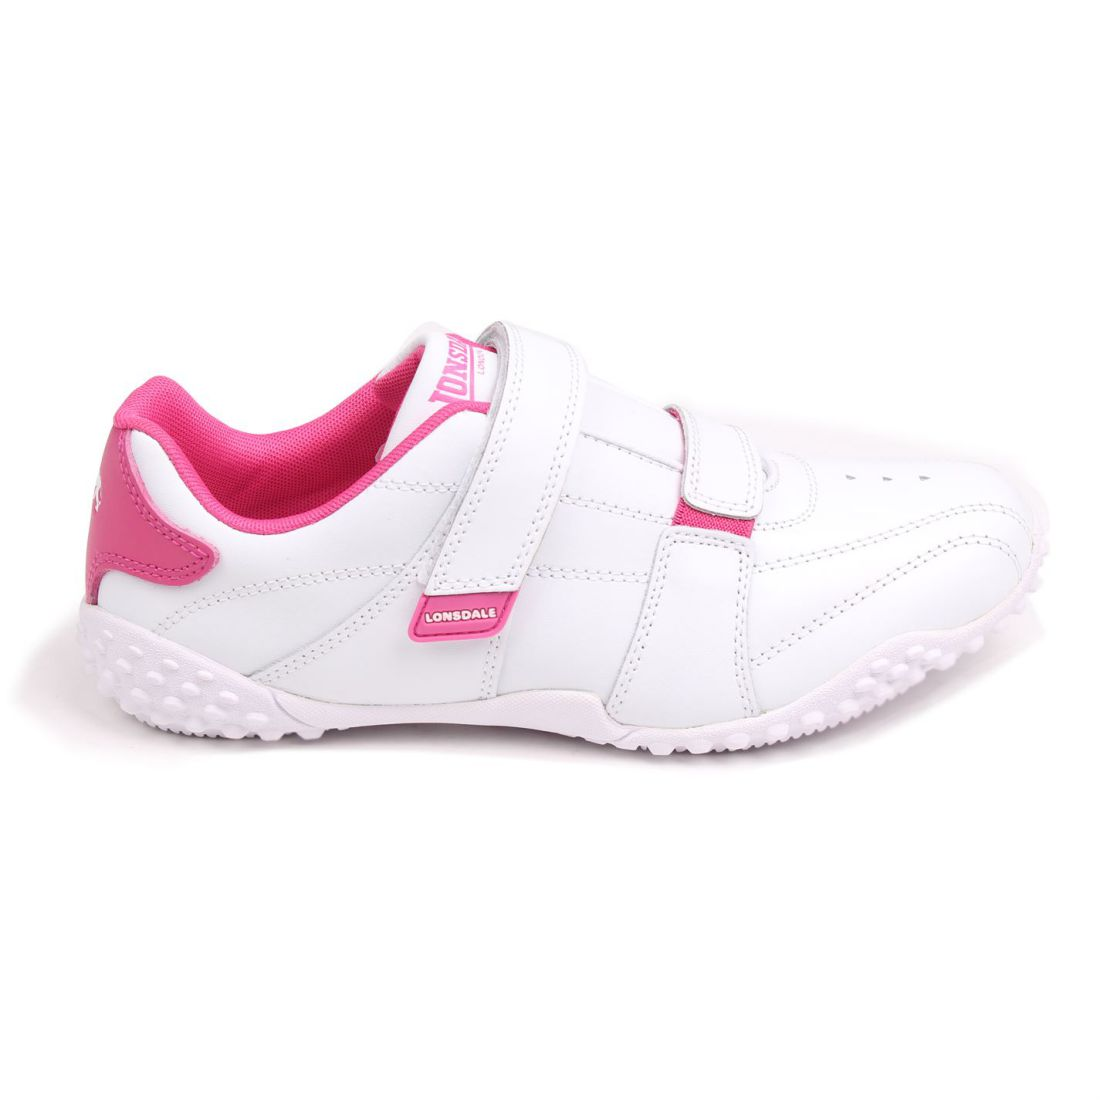 b961d64db9e6 Image is loading Lonsdale-Womens-Ladies-Fulham-Trainers-Sports-Padded-Ankle-